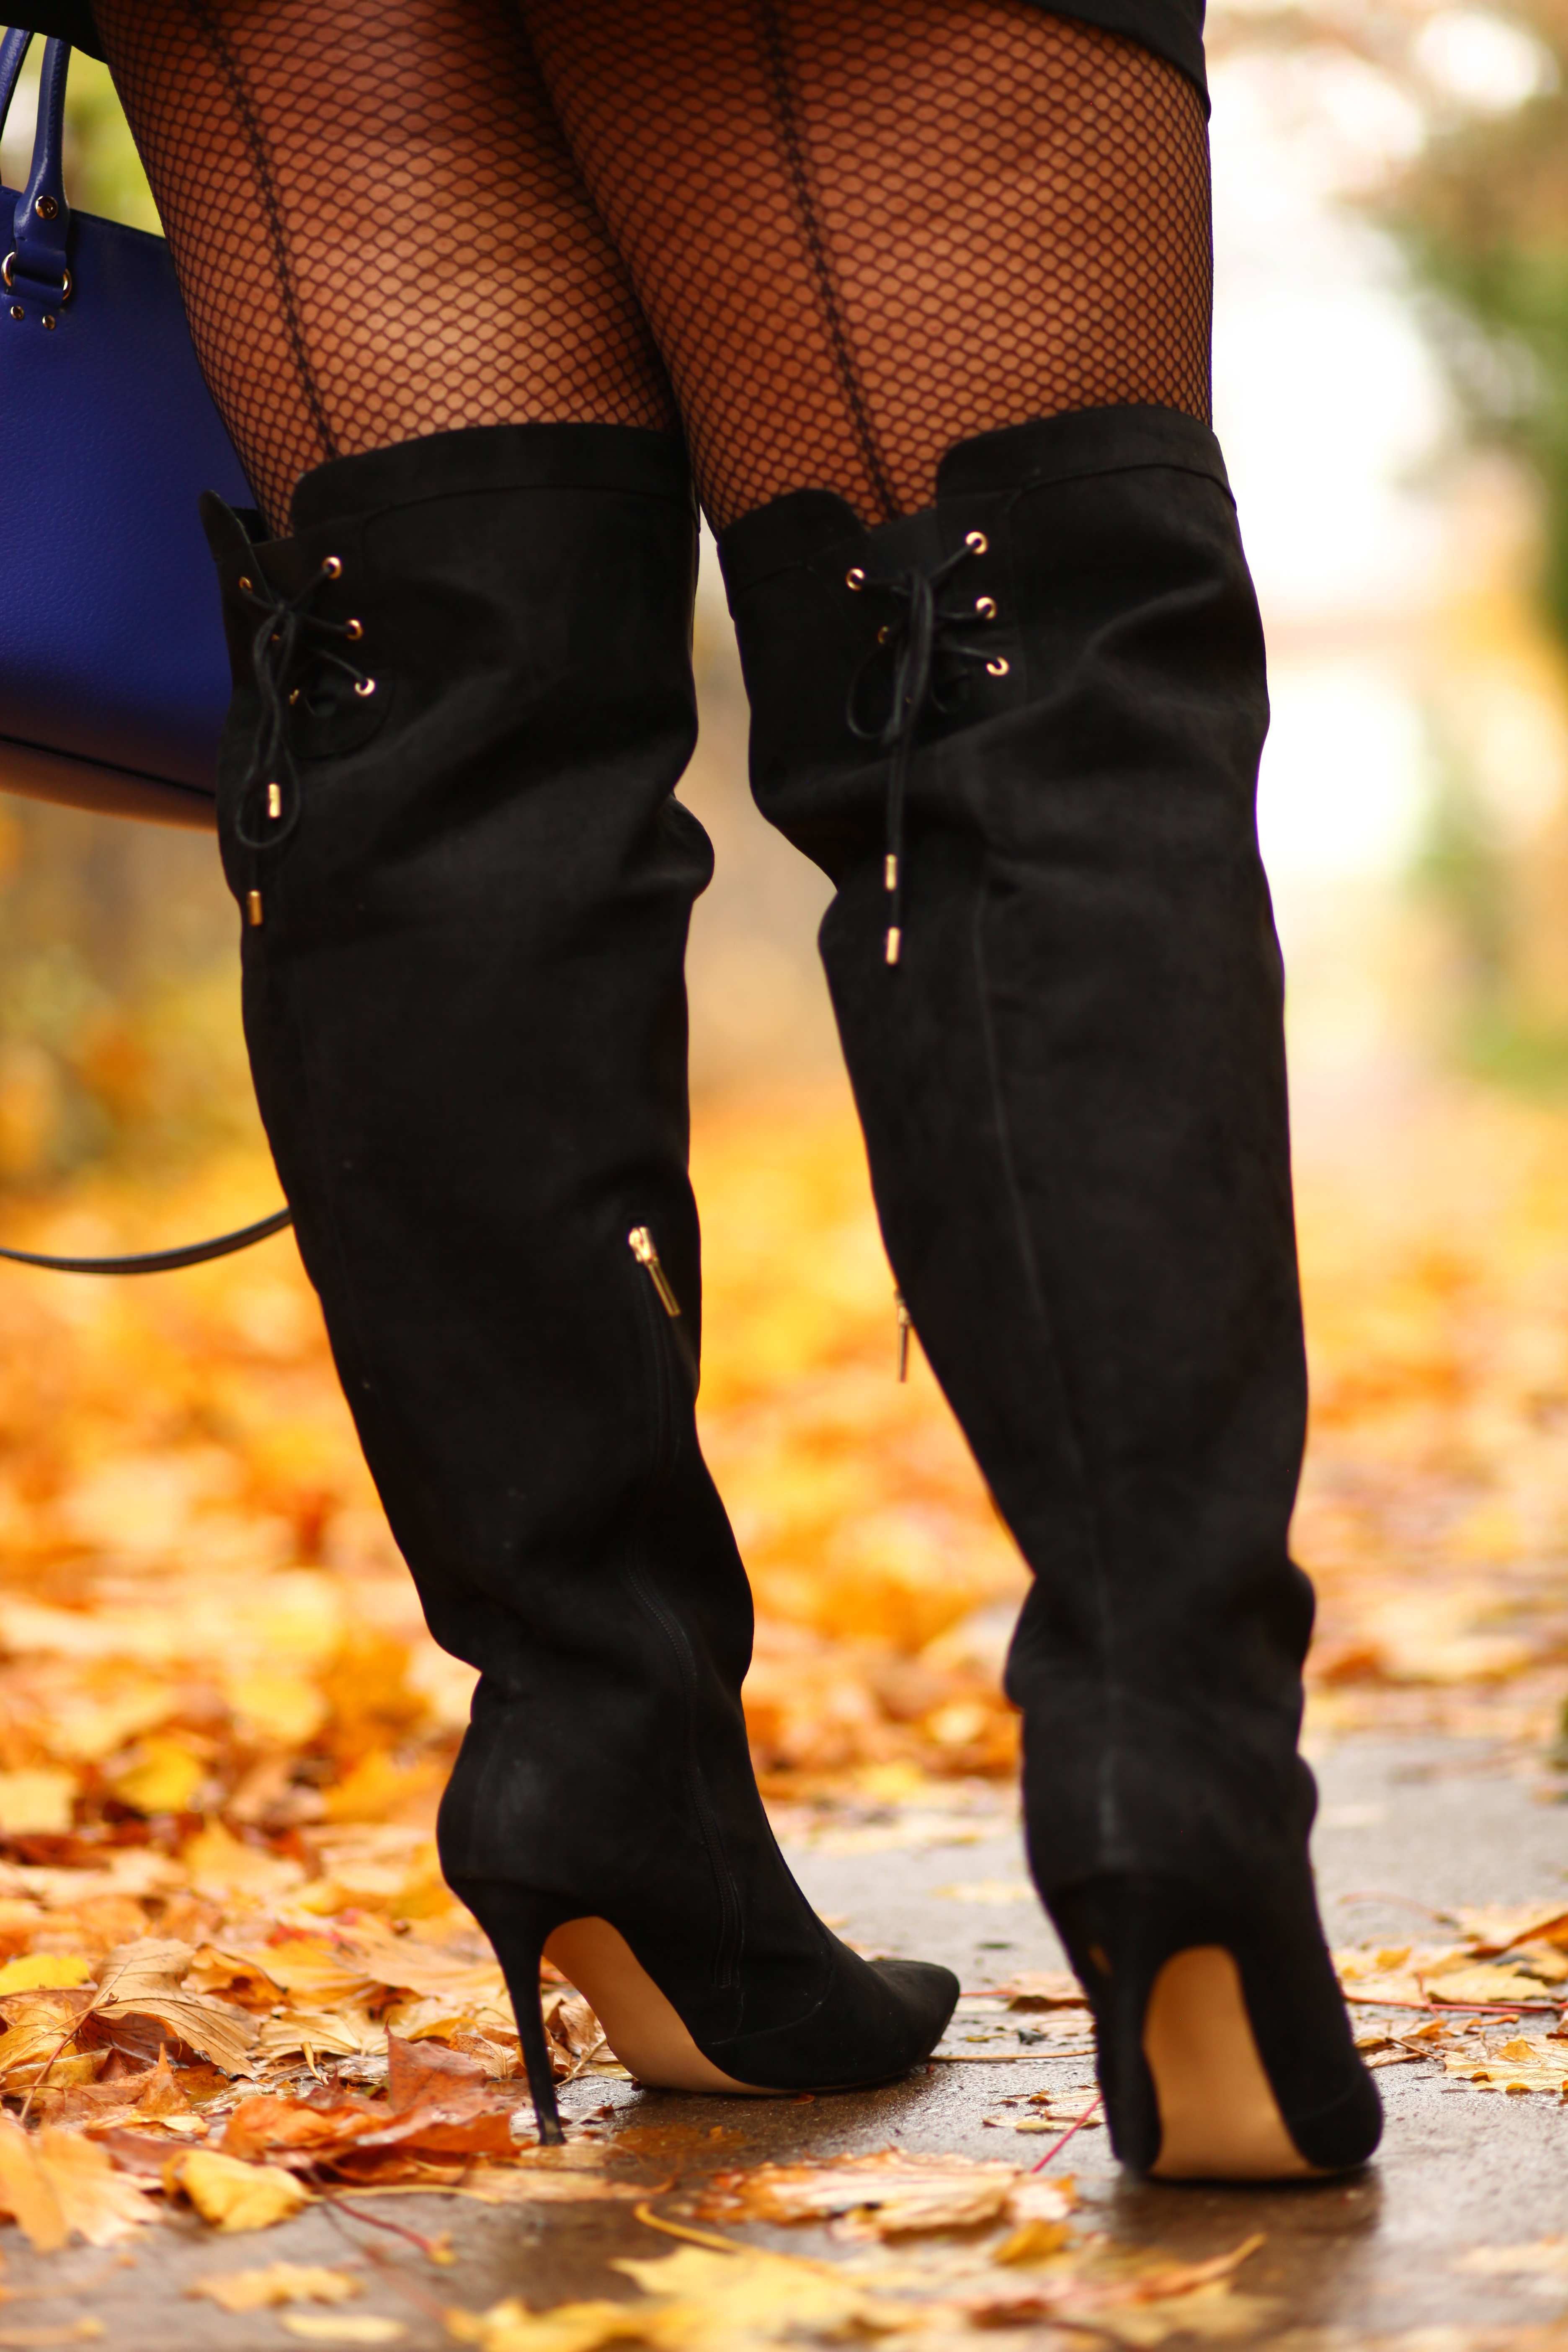 thigh boots for fat legs shop 72d08 14a1f